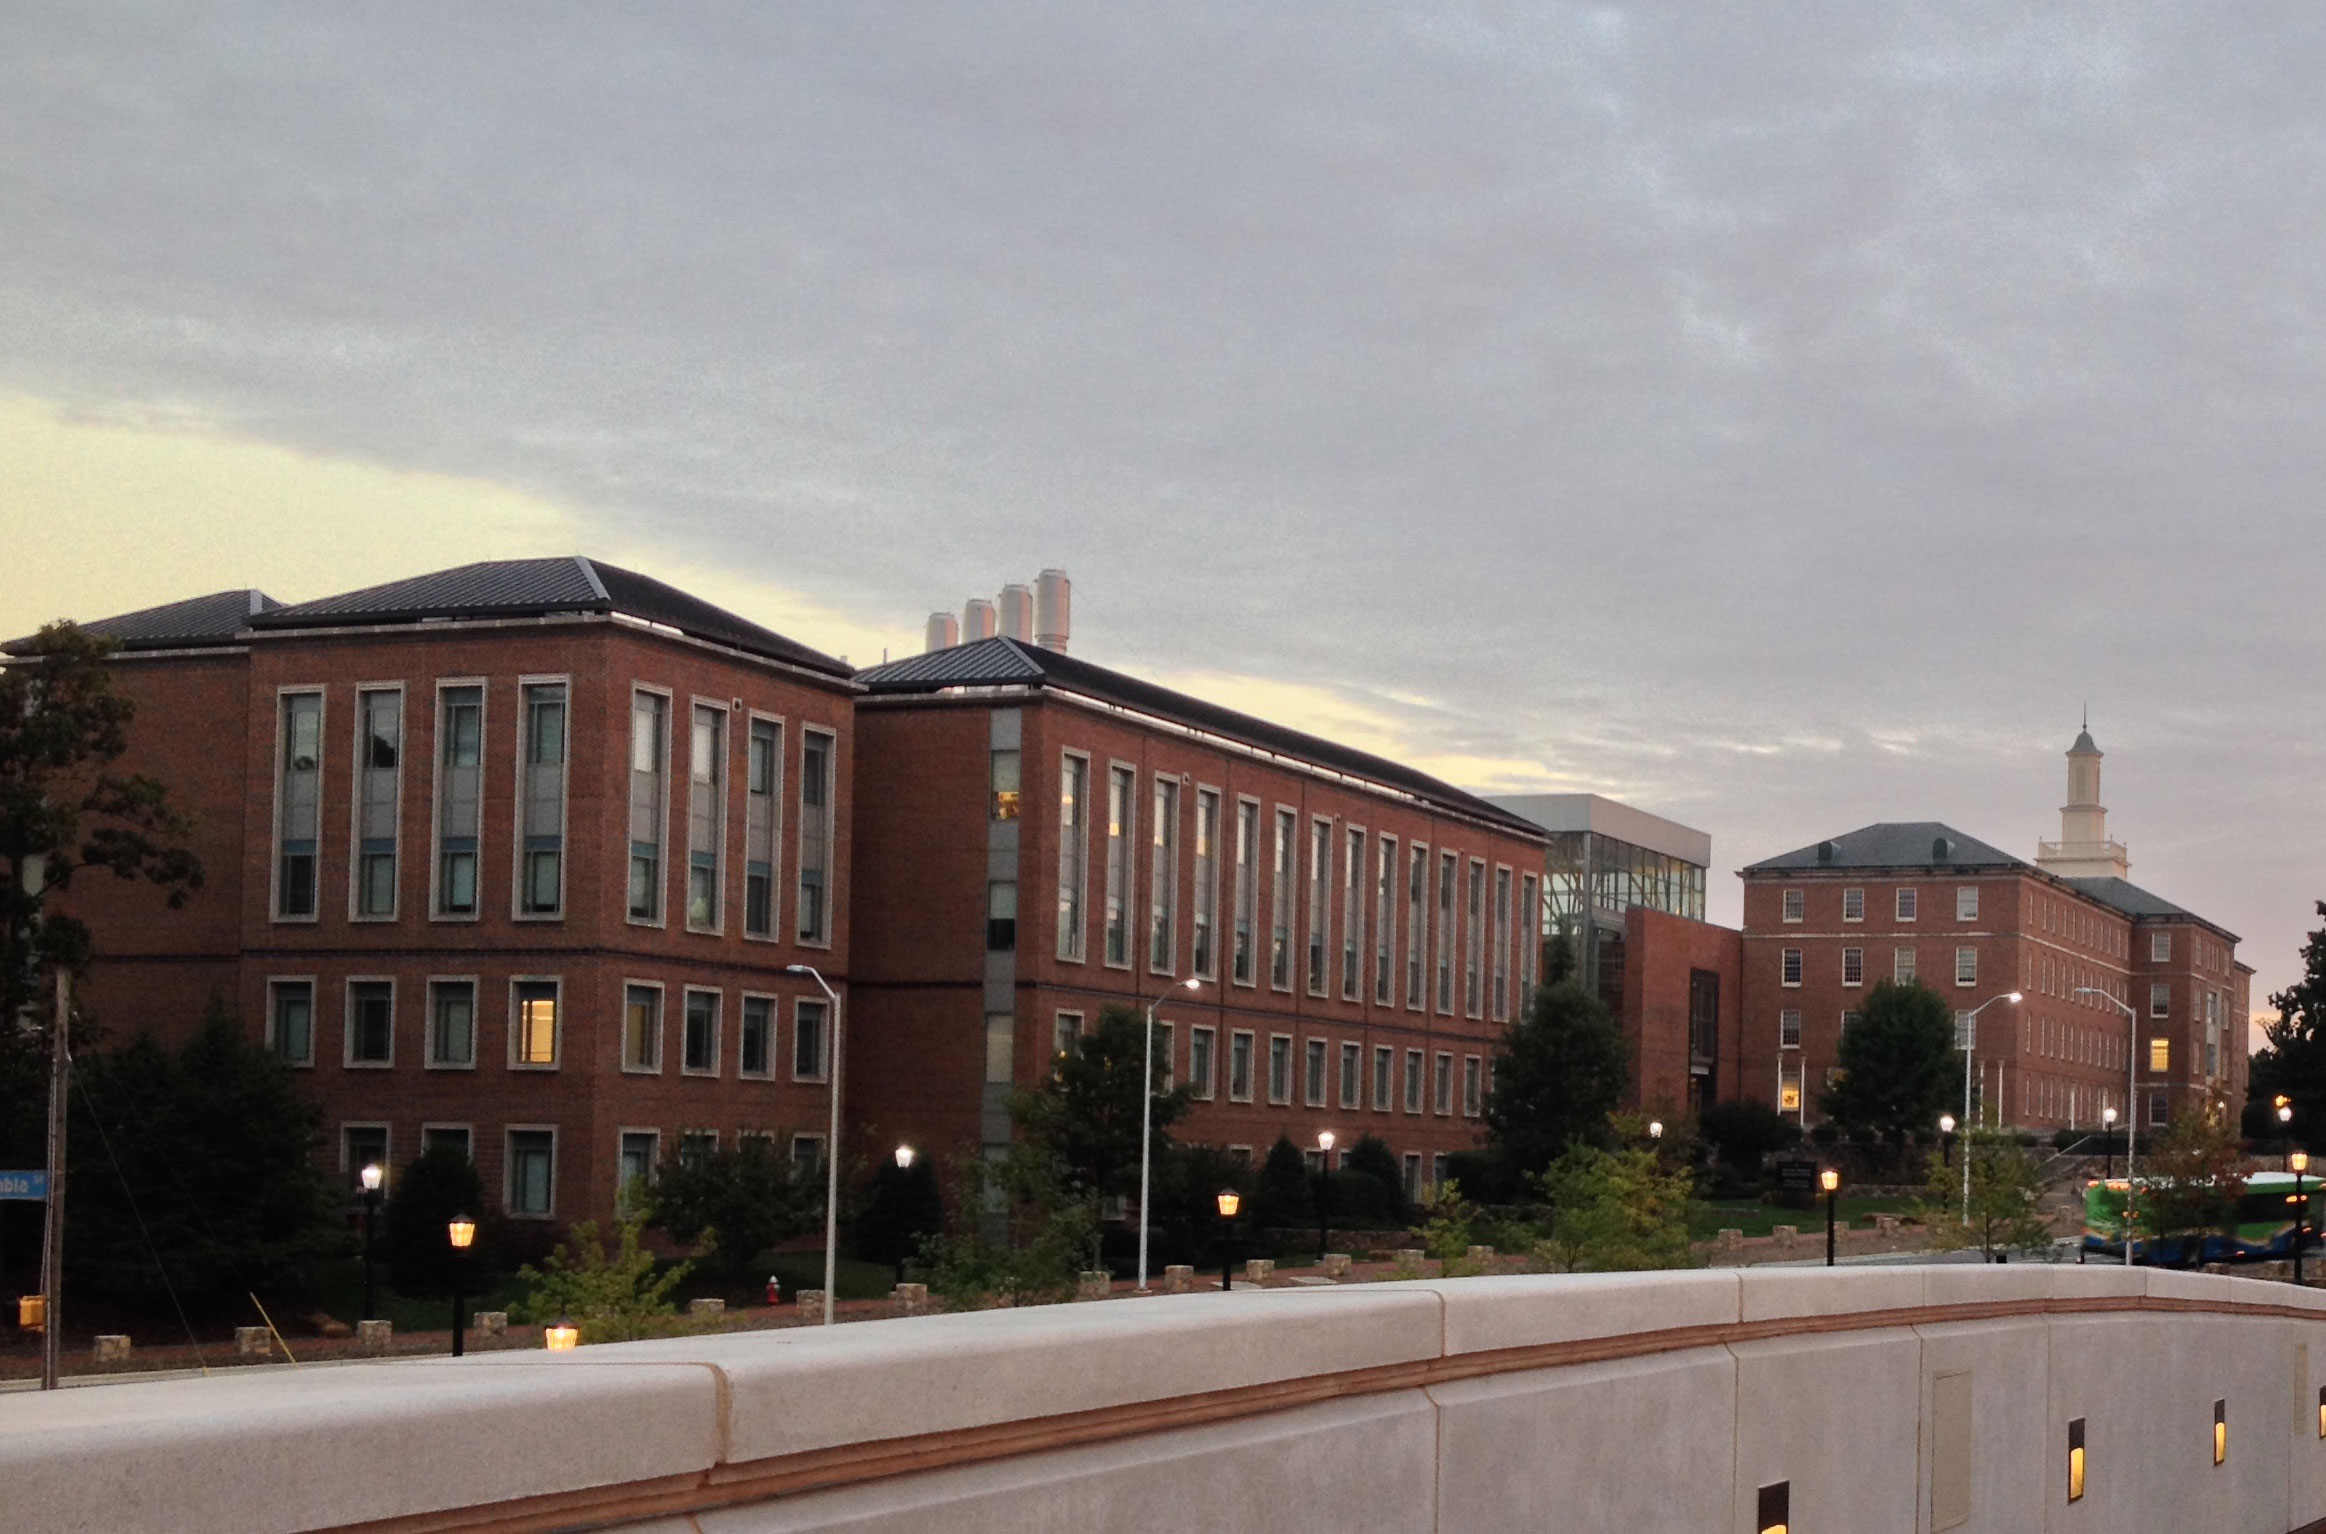 The Gillings School pictured after sunset.